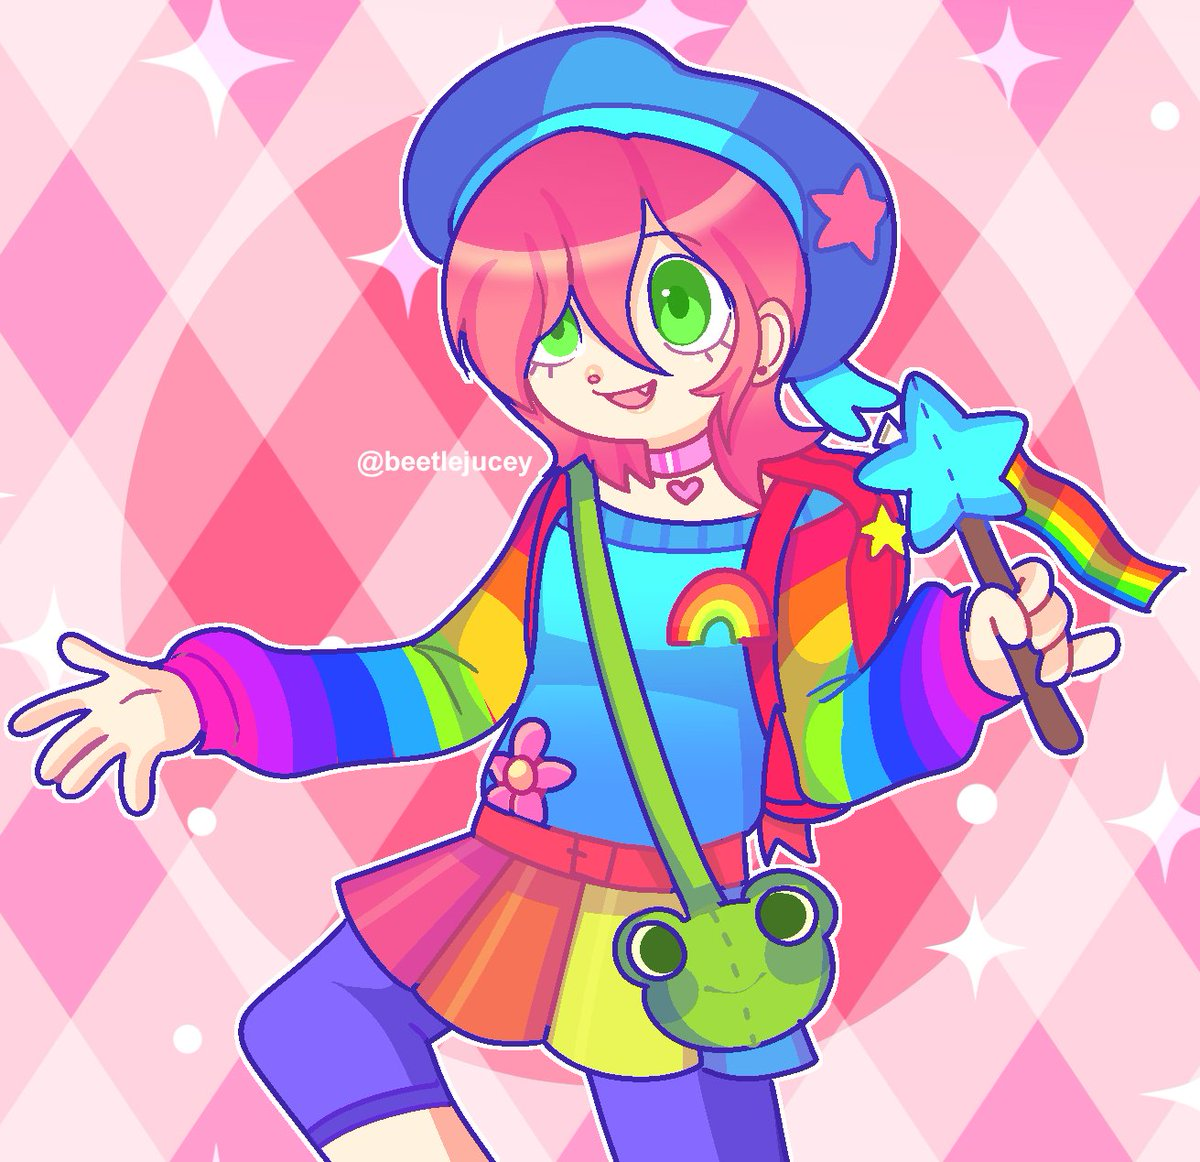 drew myself but awesum >_< (he/they) #cute #ocpic.twitter.com/vpsufq1OOY